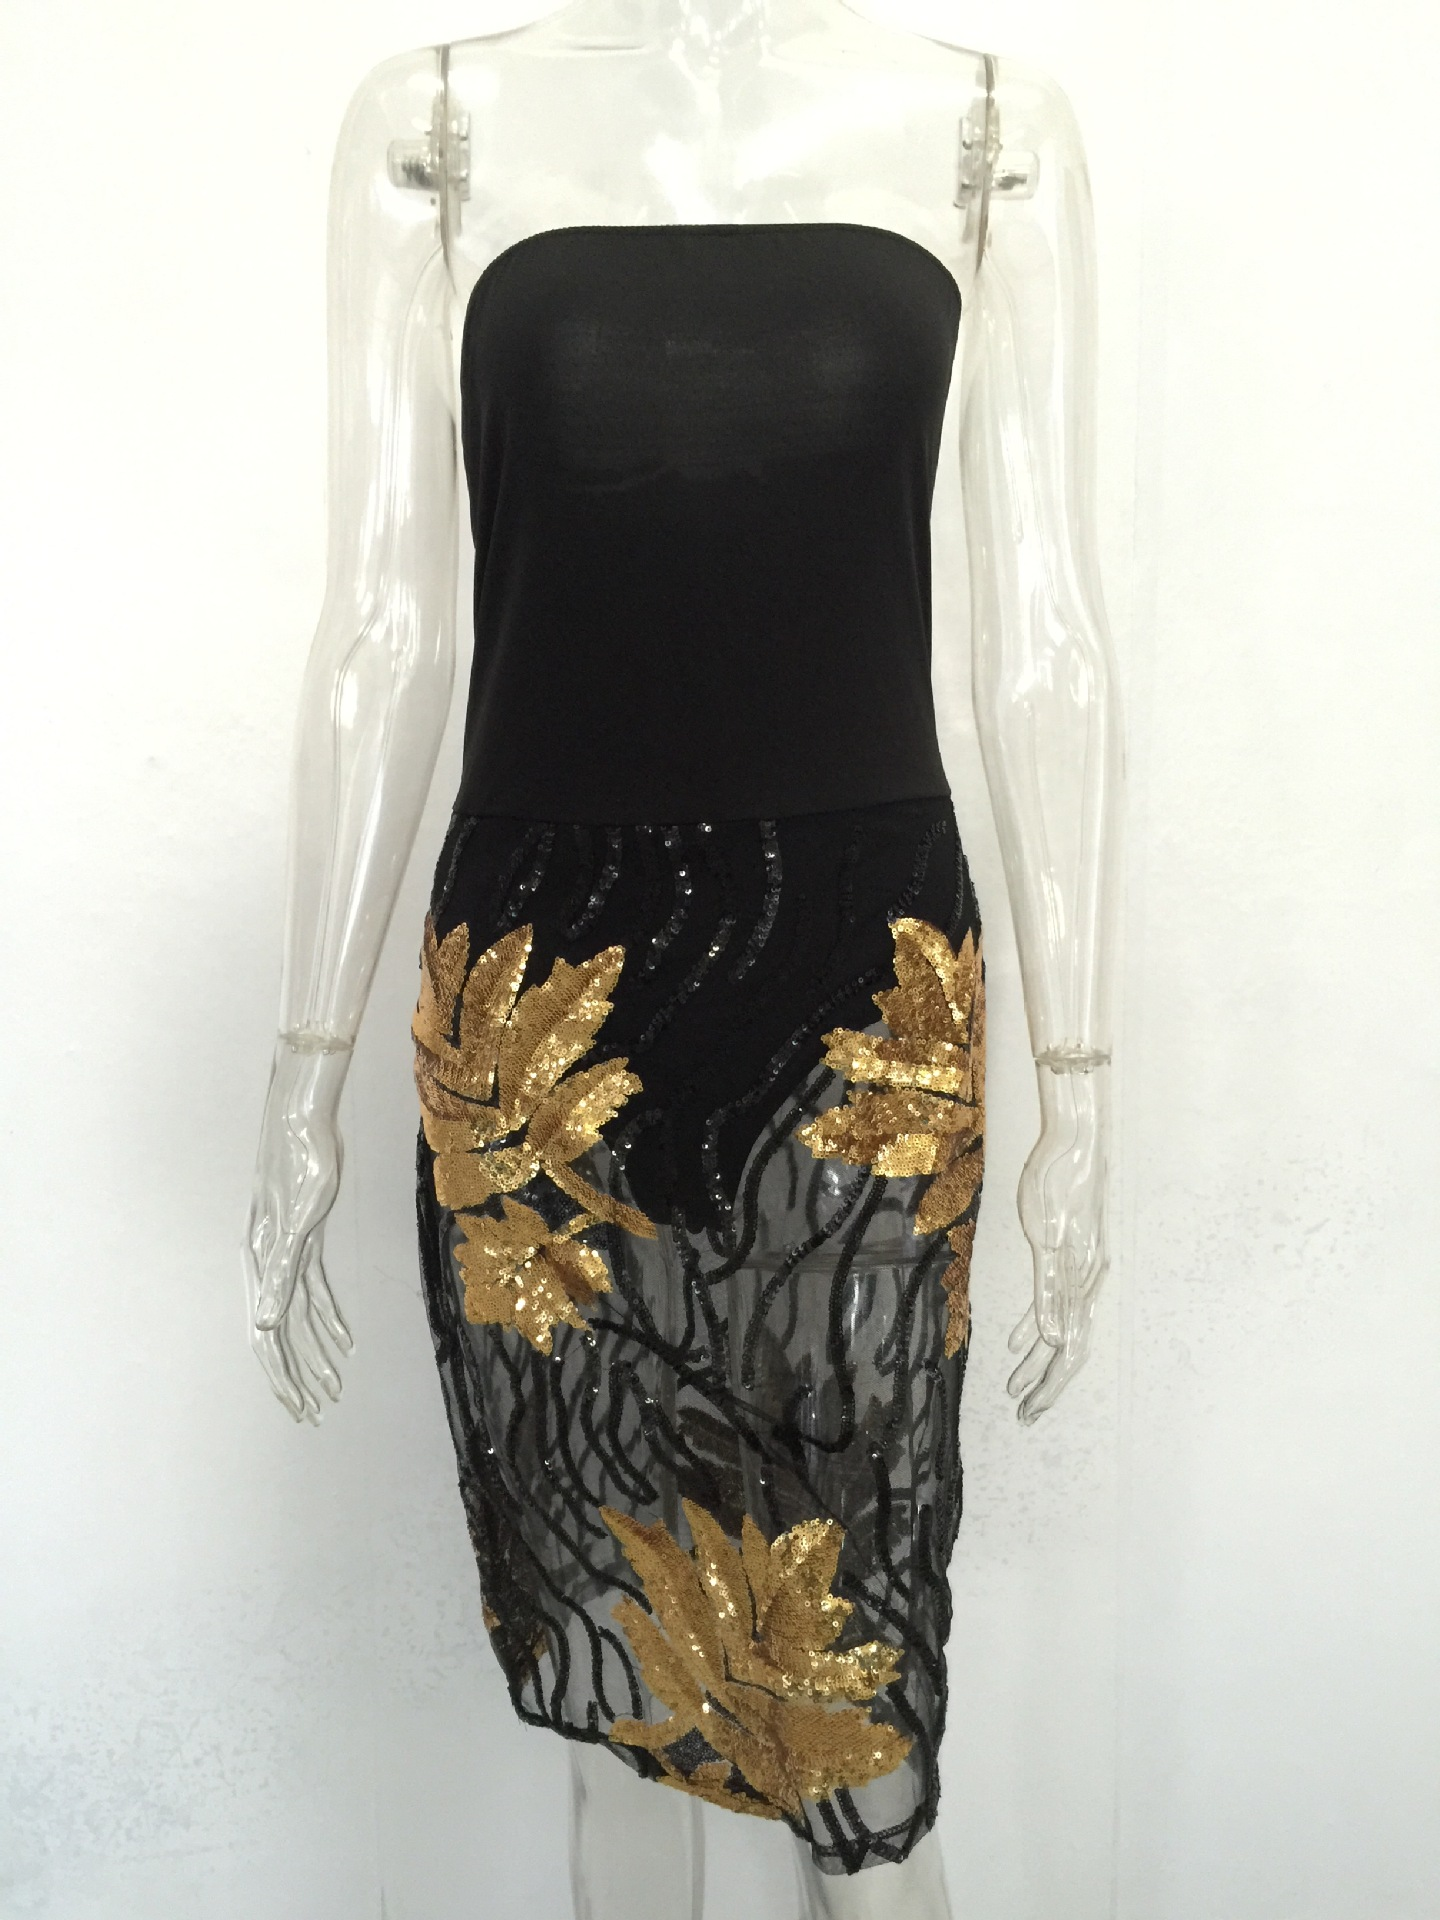 b7548211415a1 US$ 7.03 - Gold and Black Sequins Tube Dress 23375-1 - www.global-lover.com